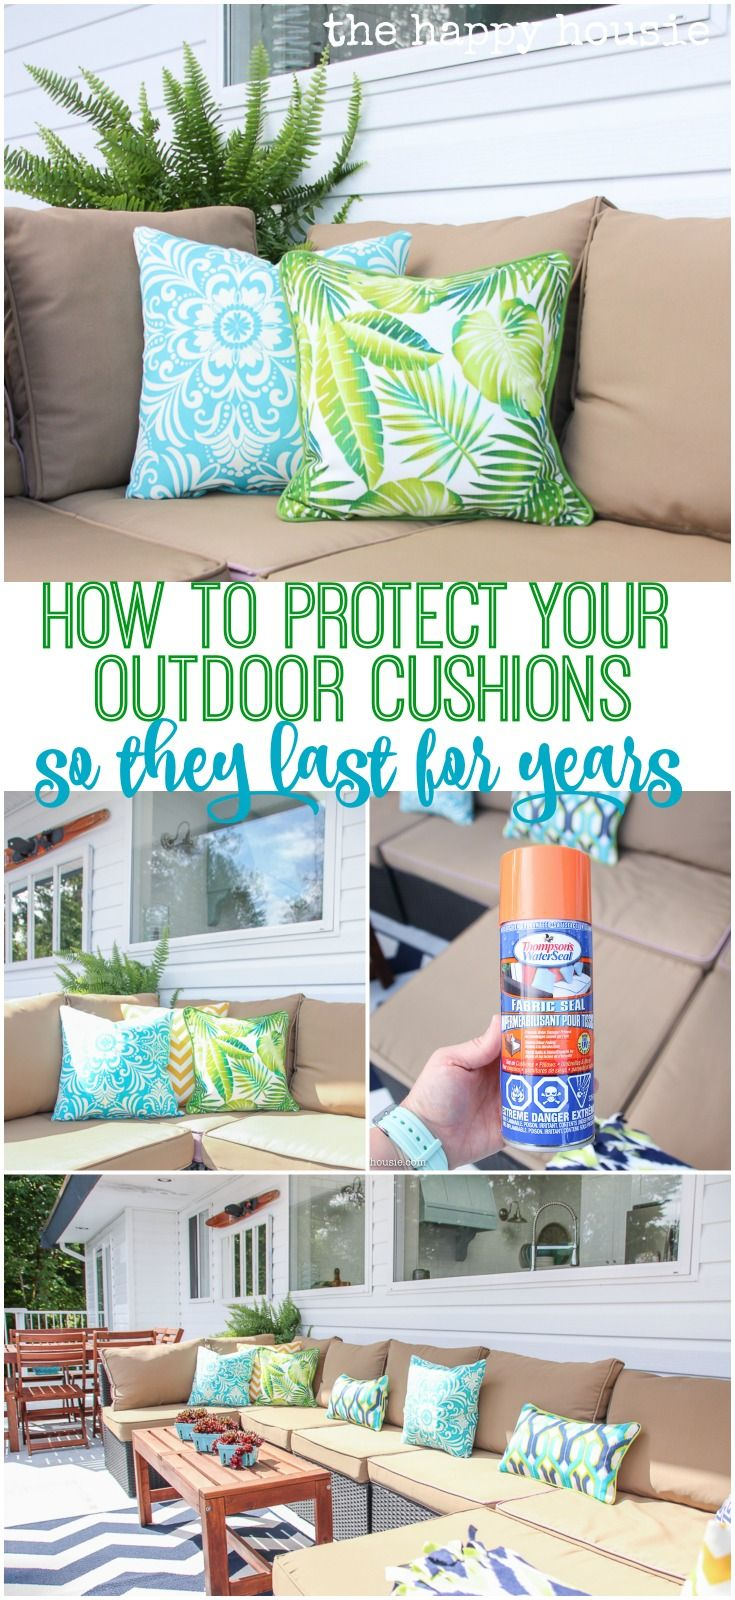 How To Protect Your Outdoor Cushions